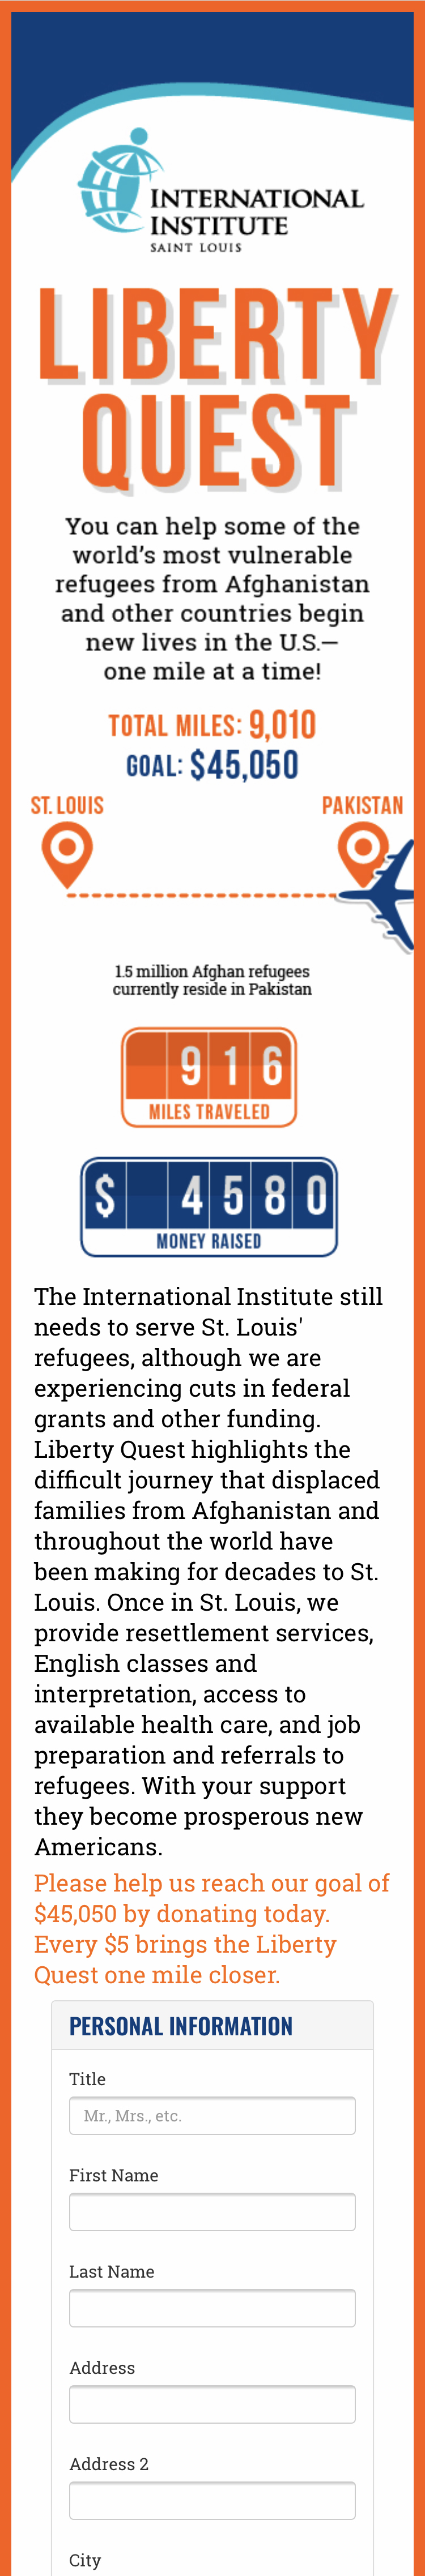 Liberty Quest fundraising website mobile view